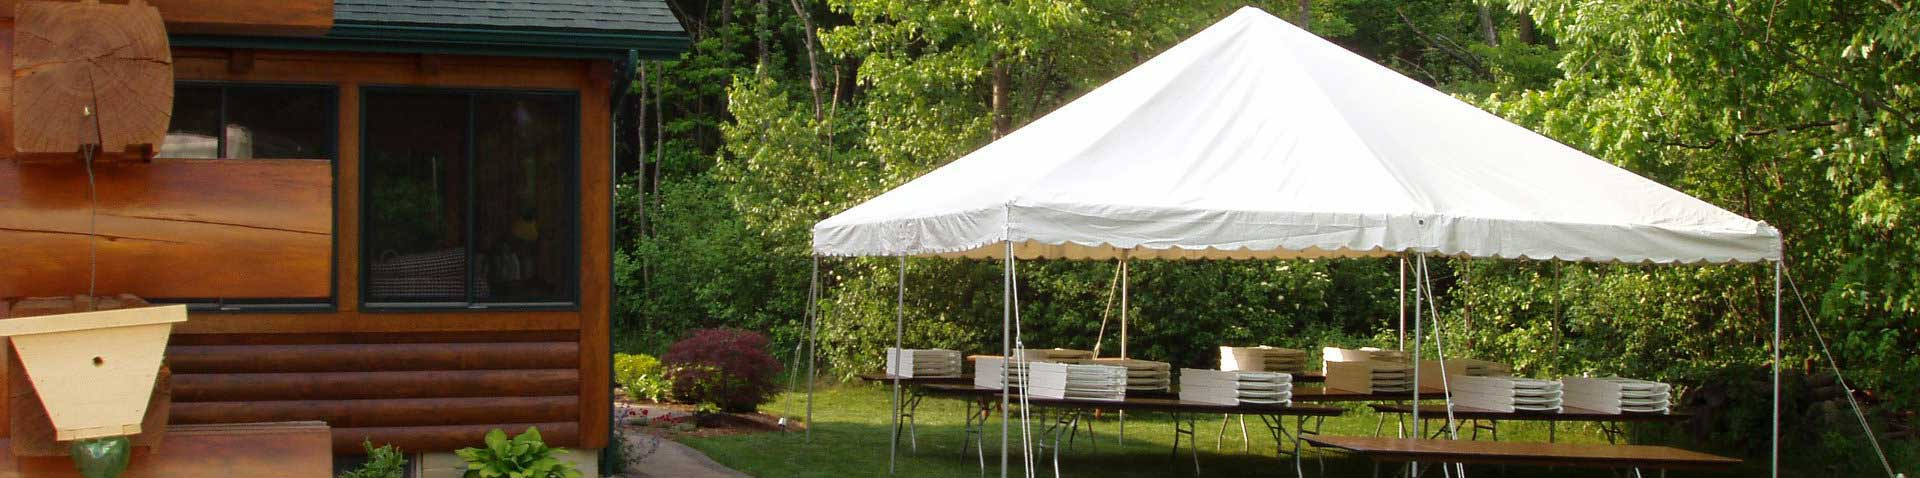 Party rentals in Superior WI, Duluth MN, Hermantown MN and Cloquet MN